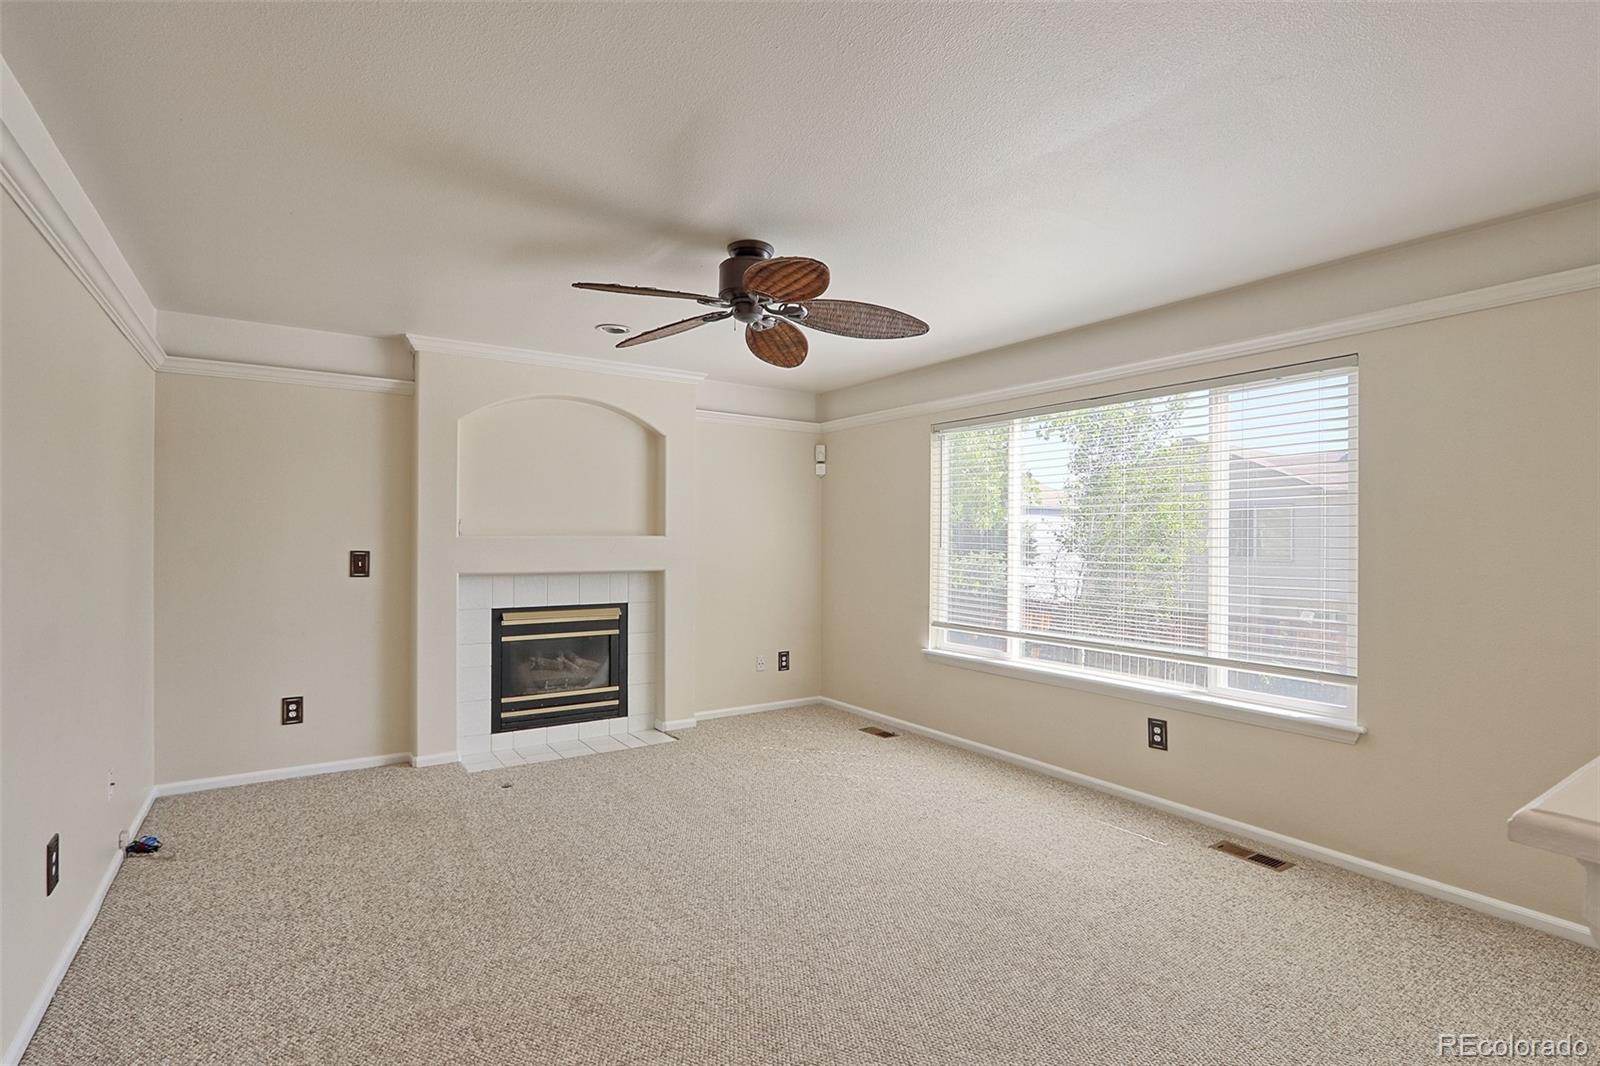 MLS# 8997361 - 8 - 4965 Collinsville Place, Highlands Ranch, CO 80130